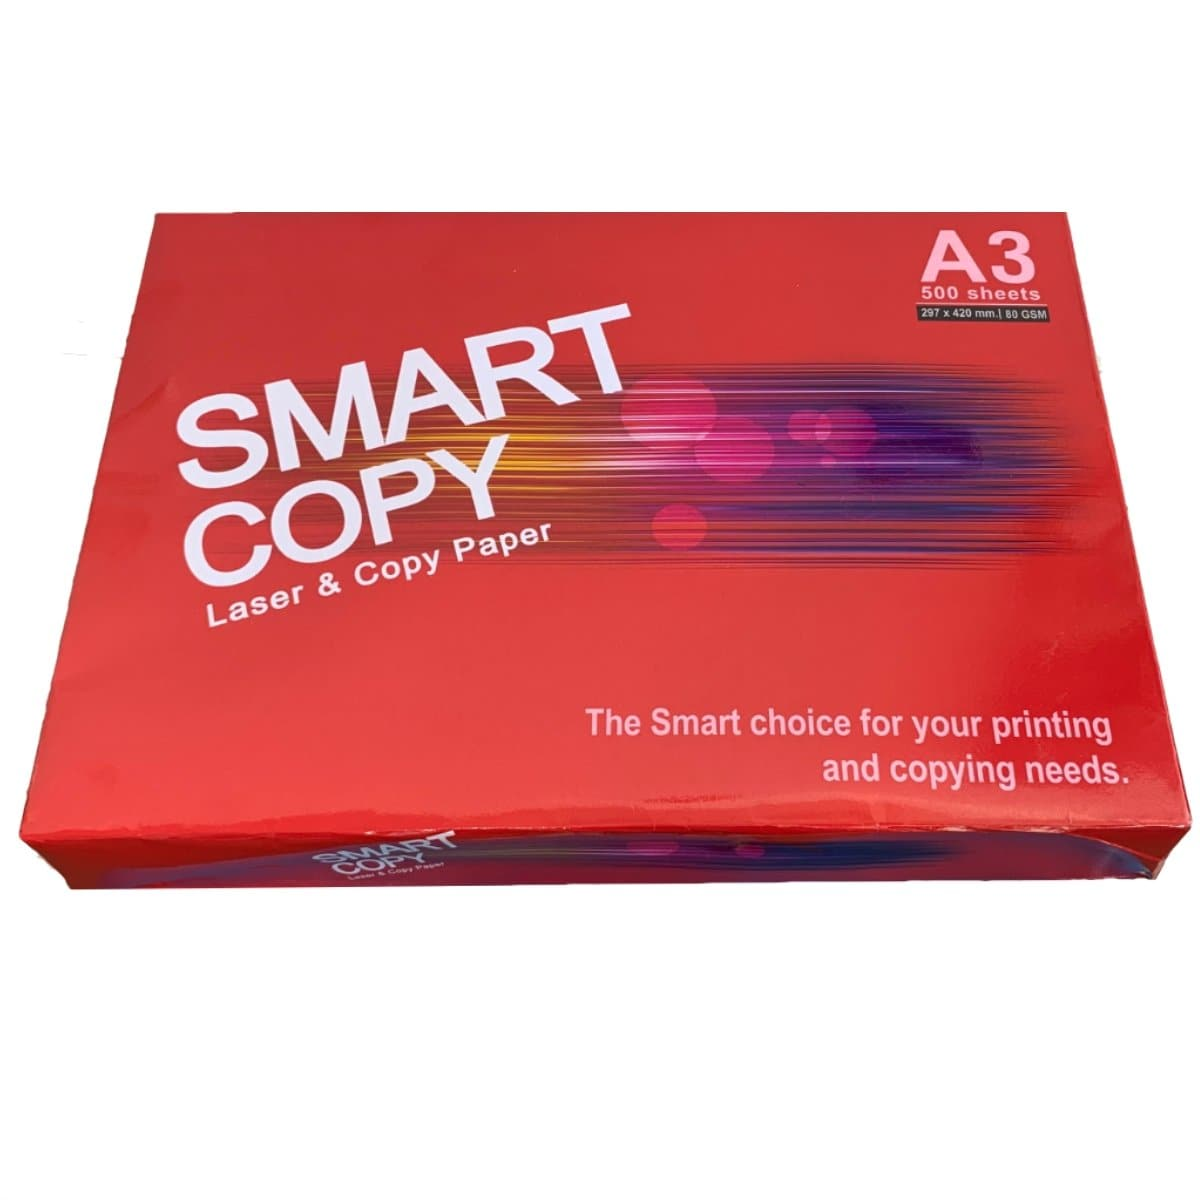 SMART COPY Paper A3, 80gsm, 500sheets/ream, White